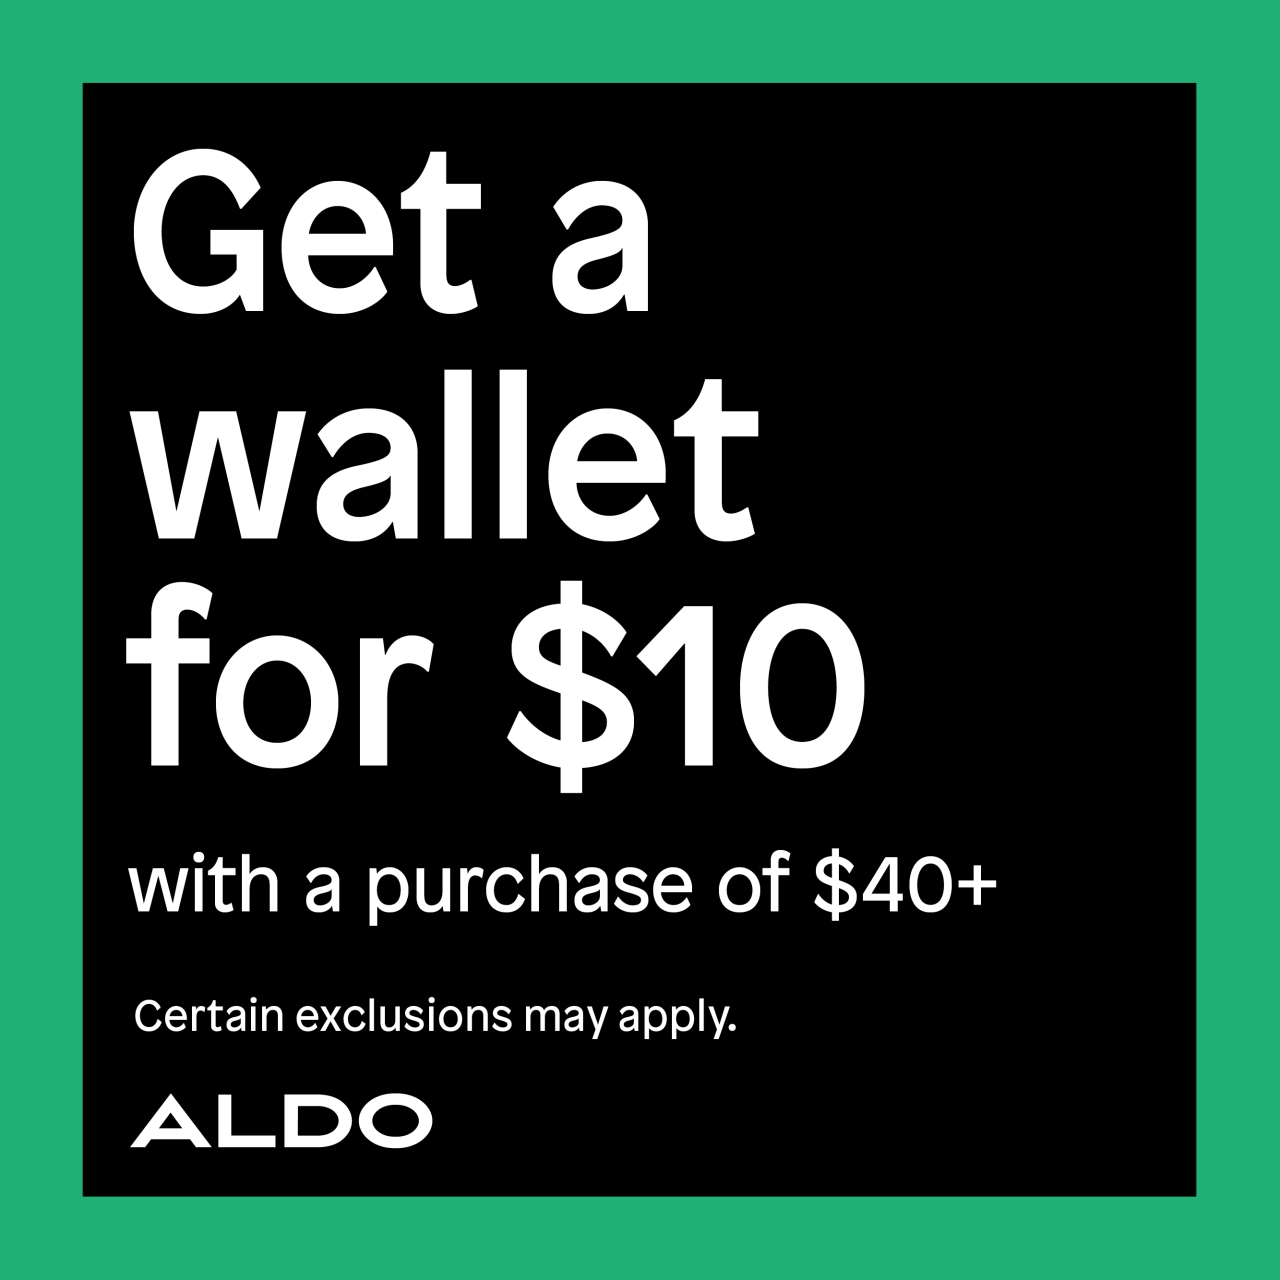 Get a wallet for $10 with a purchase of $40 or more! from ALDO